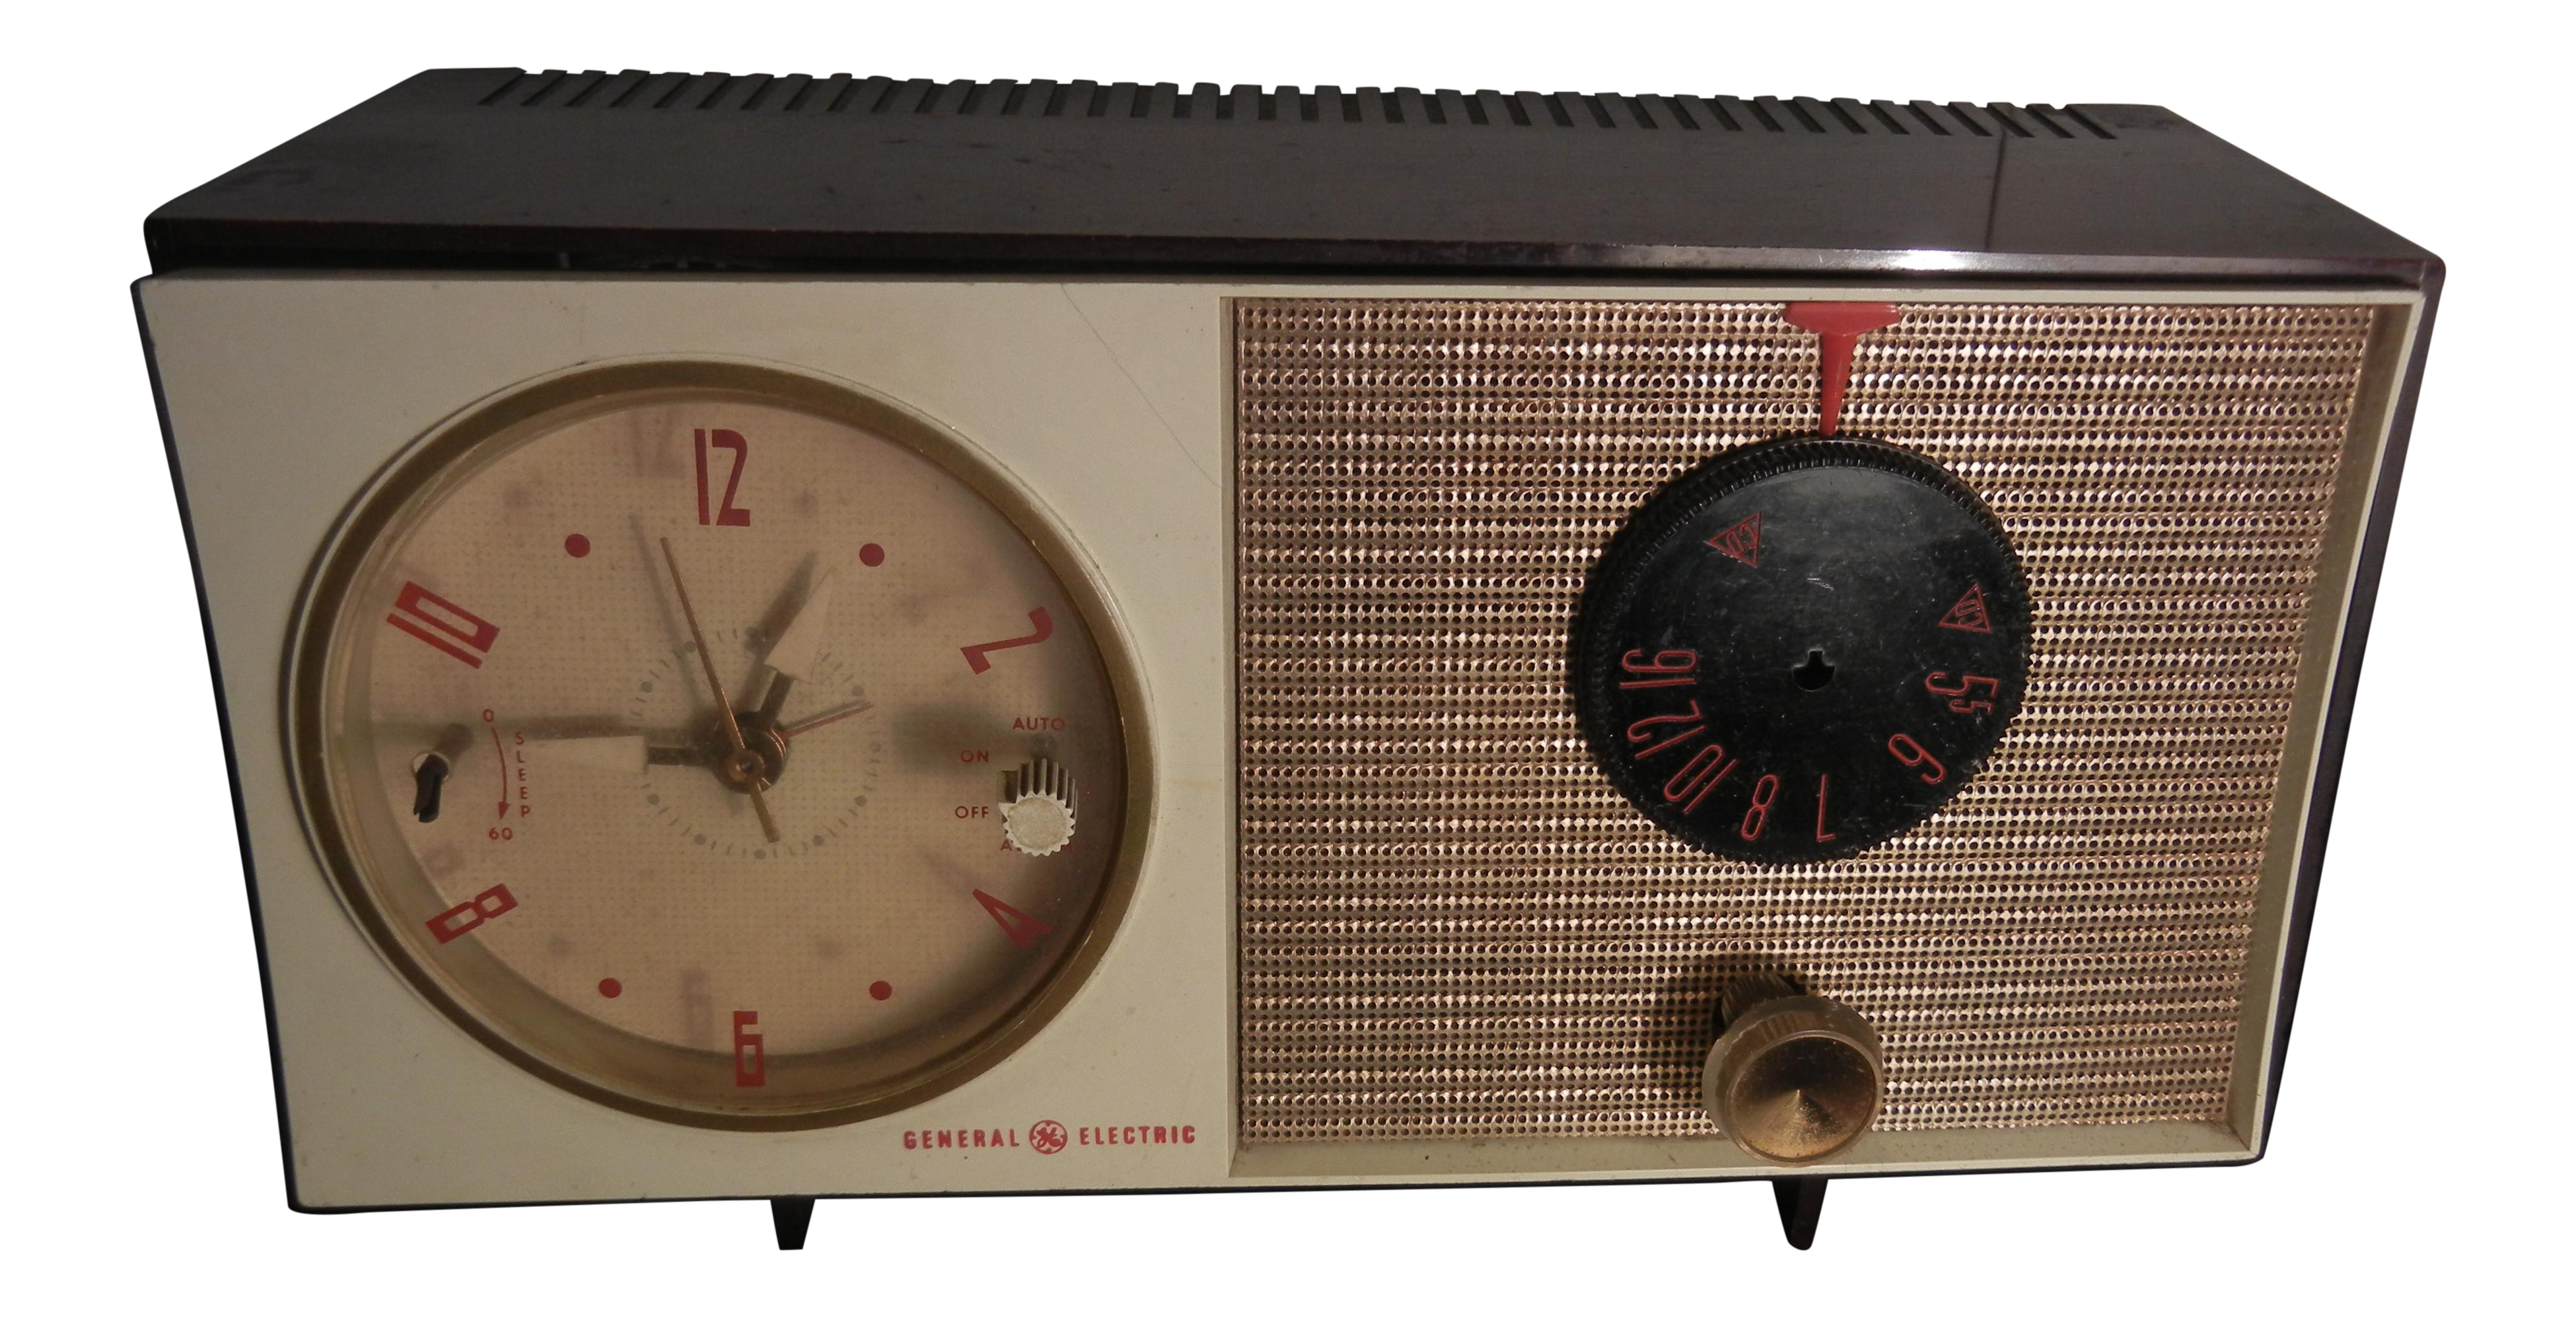 1960s vintage art deco general electric clock radio chairish for Kitchen cabinet trends 2018 combined with wall clock art deco